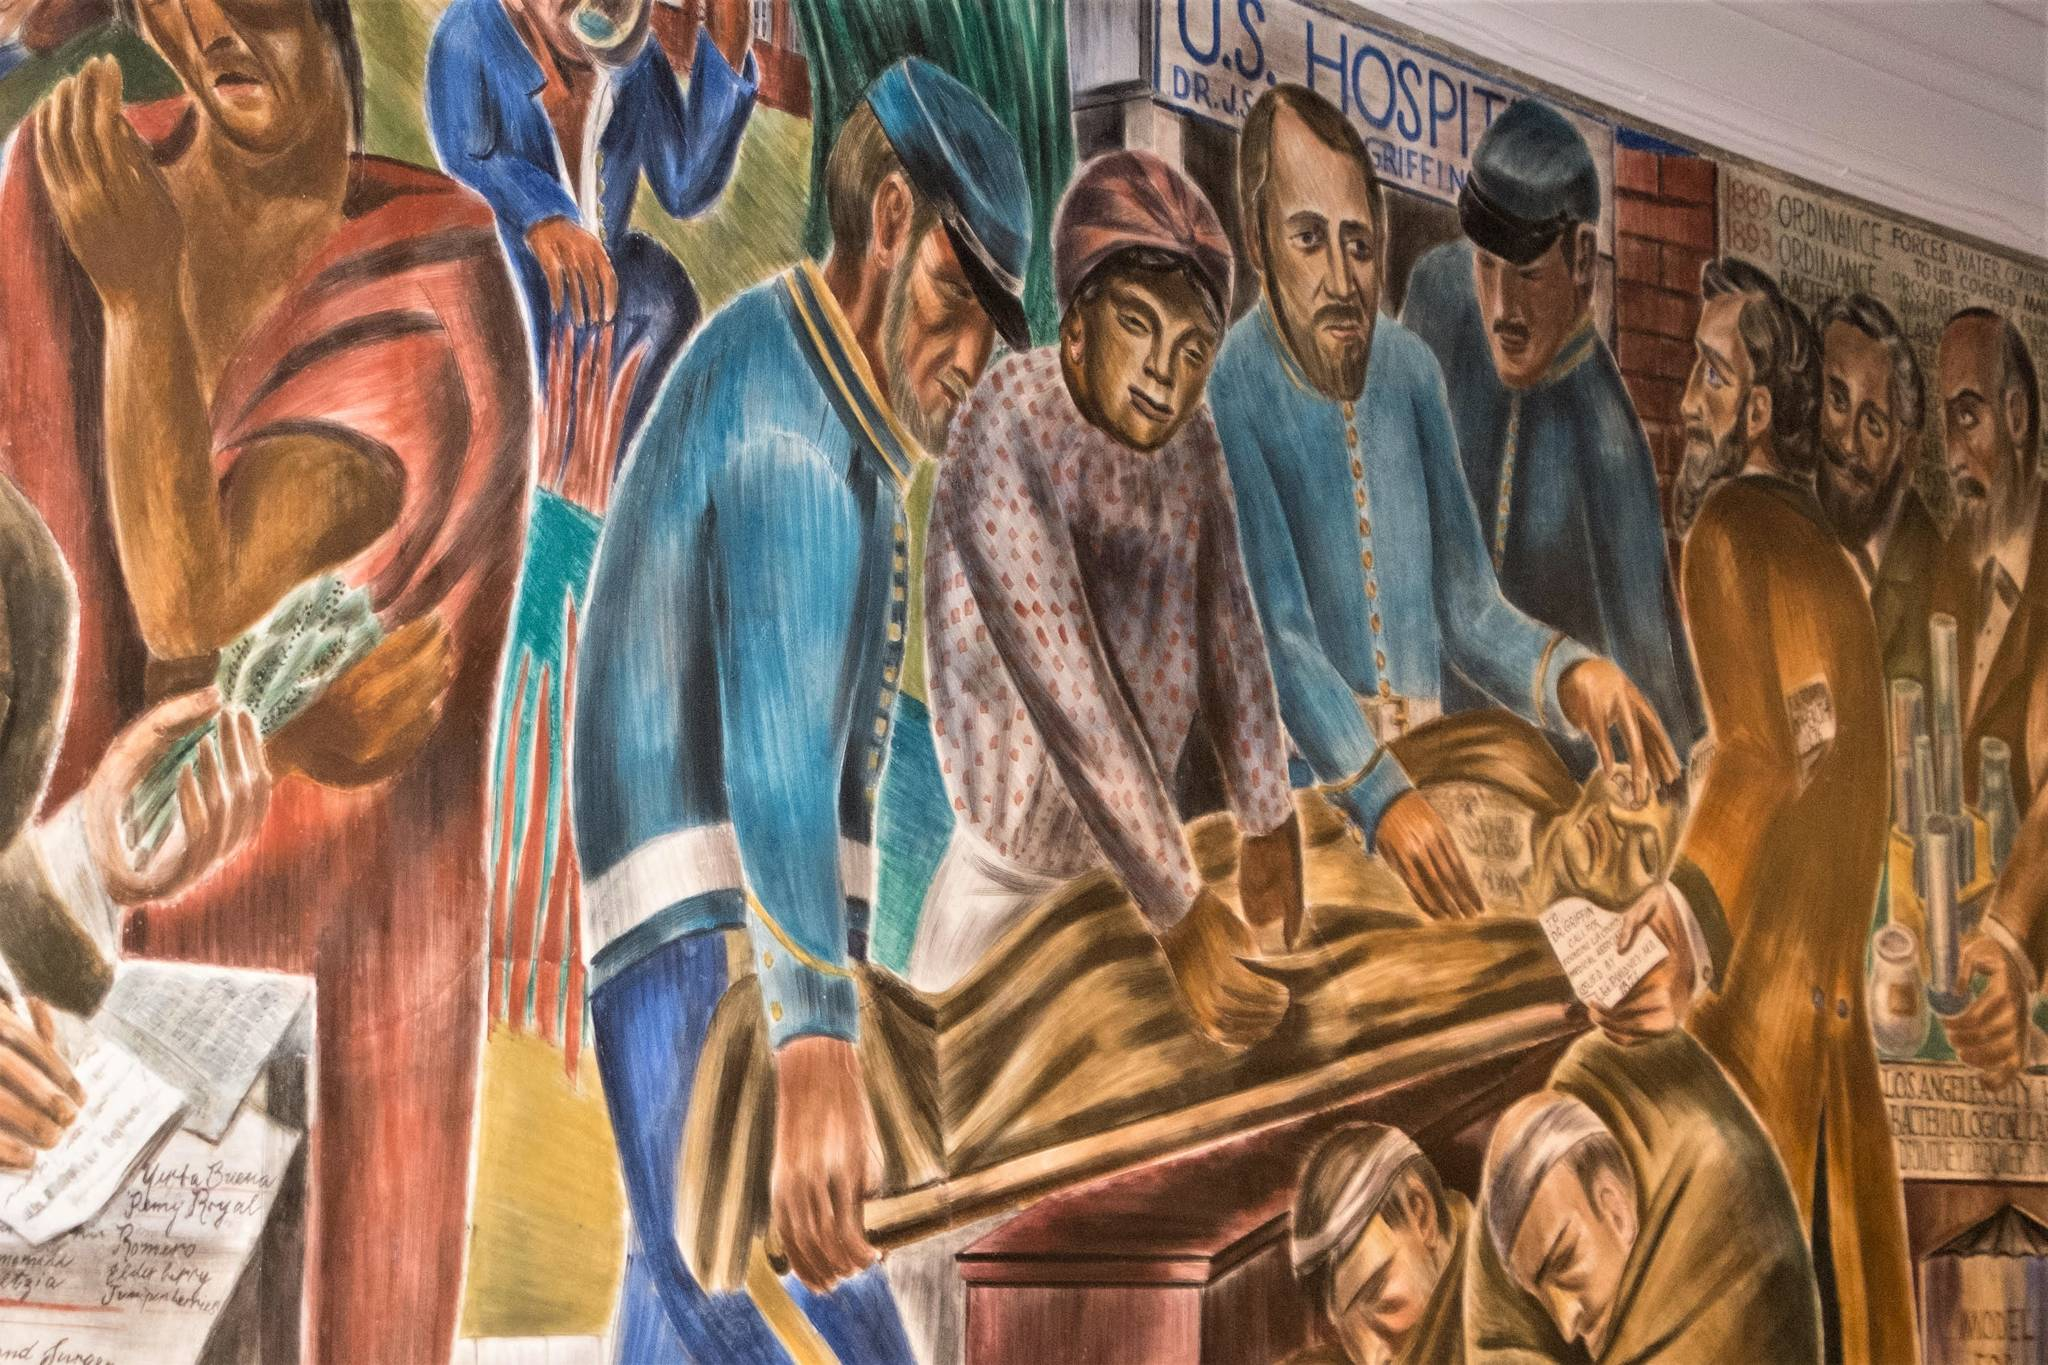 Murals painted at UCSF in the late 1930s by artist Bernard Zakheim depict scenes from California's medical history, from the Spanish era into the early twentieth century. Zakheim, a Diego Rivera-collaborator, was regarded as one of the finest muralists of his day. The most celebrated panel features Biddy Mason, a Georgia slave turned California philanthropist and entrepreneur. (Photo courtesy Richard Rothman)